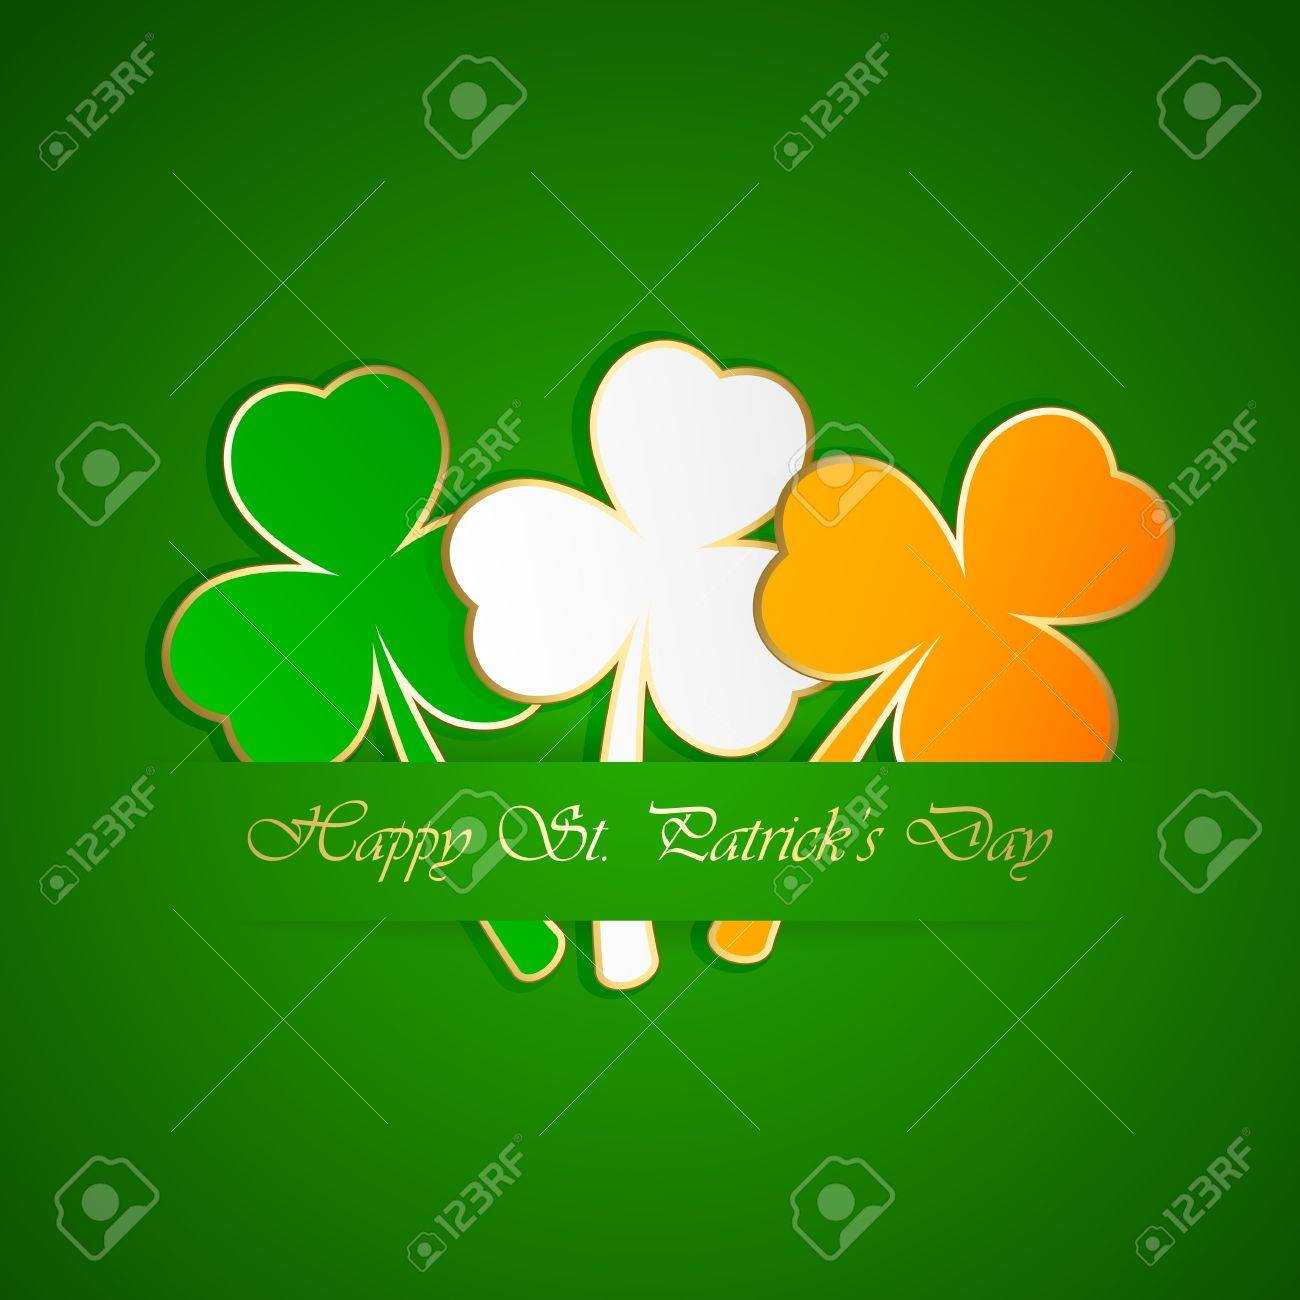 Three-colored leaves of a clover on green background illustration. Stock Vector - 17797460